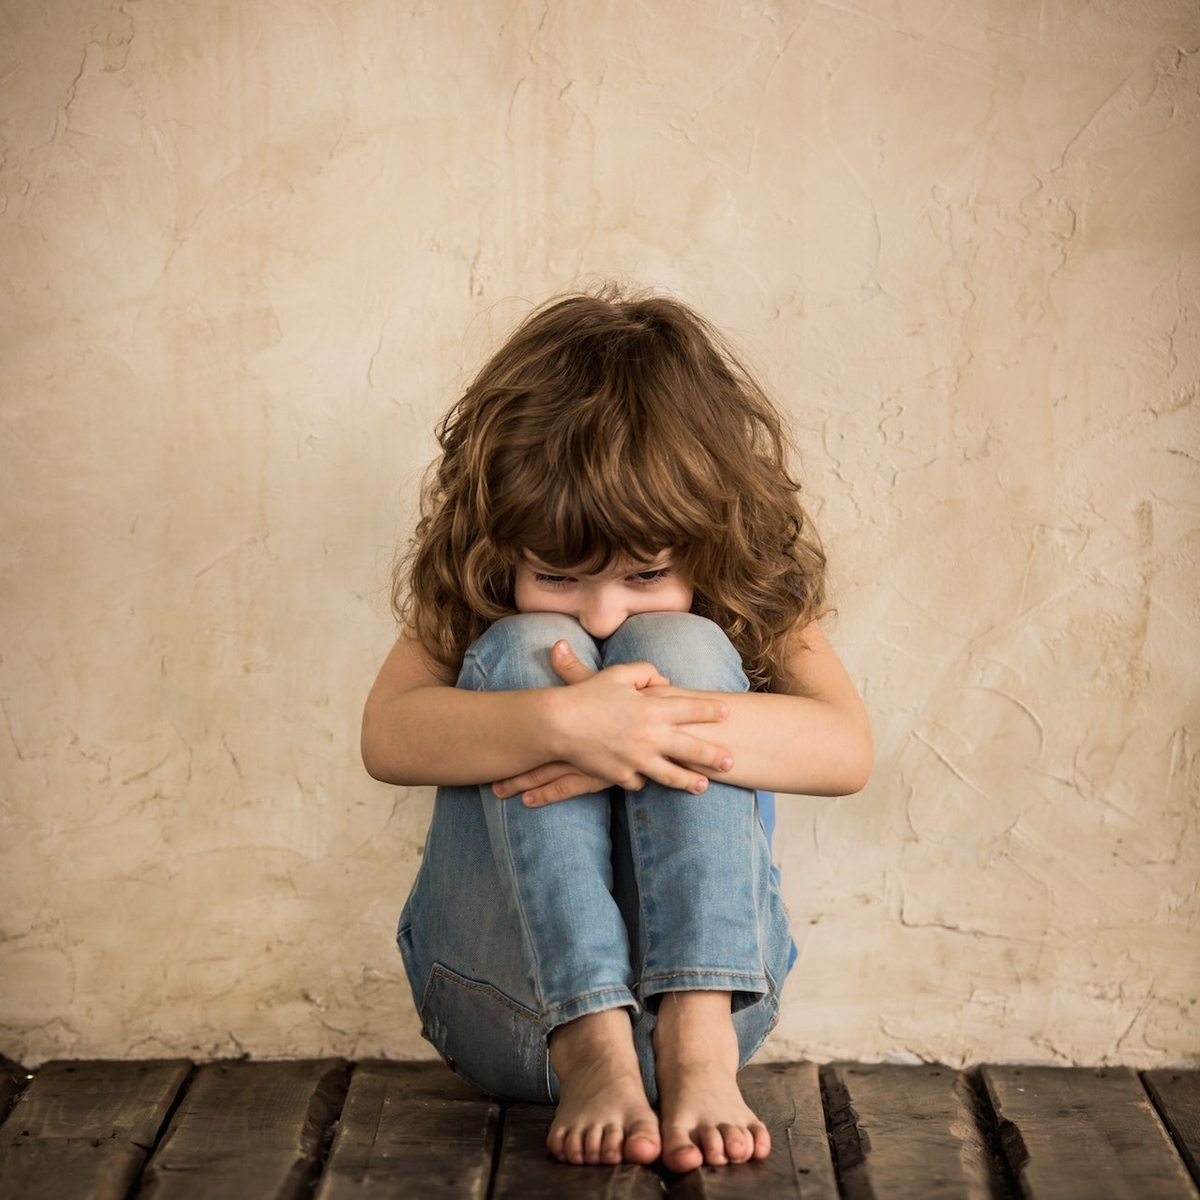 Avoidant attachment disorder relationships dating 5